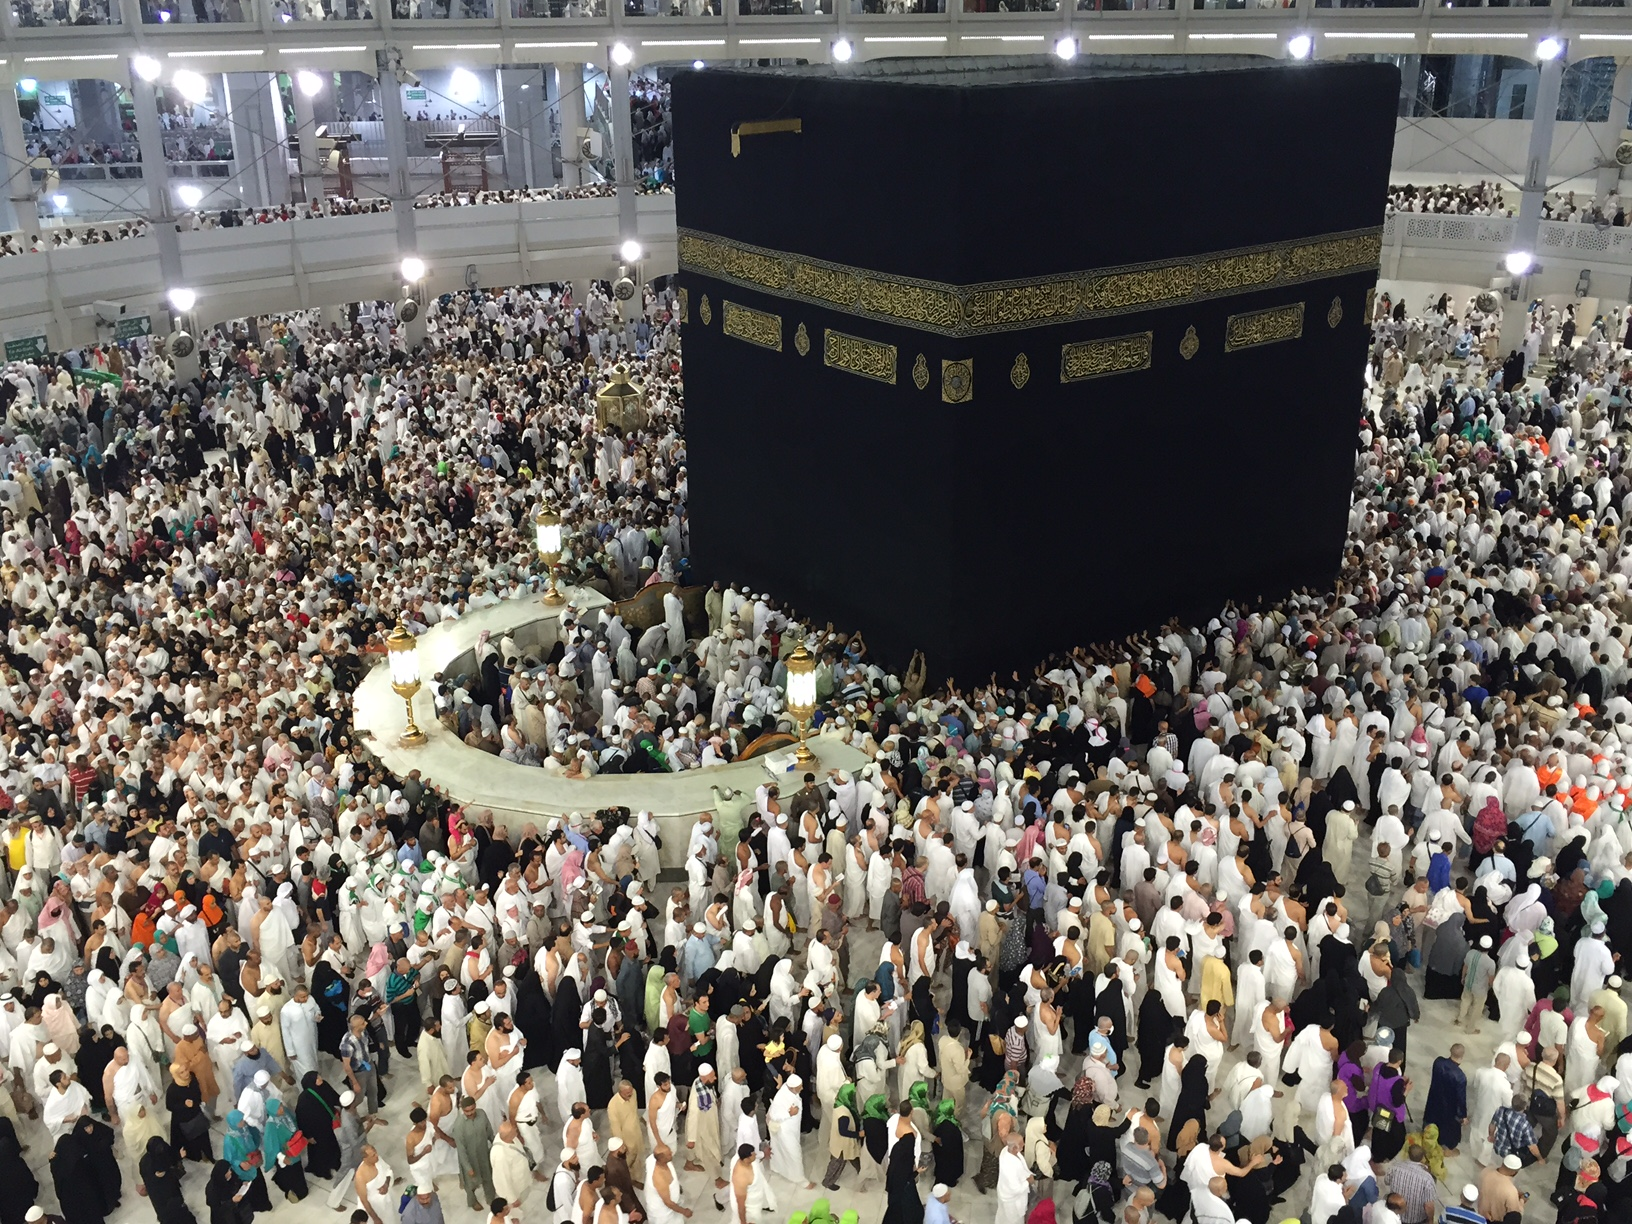 Grand view of the Kaaba